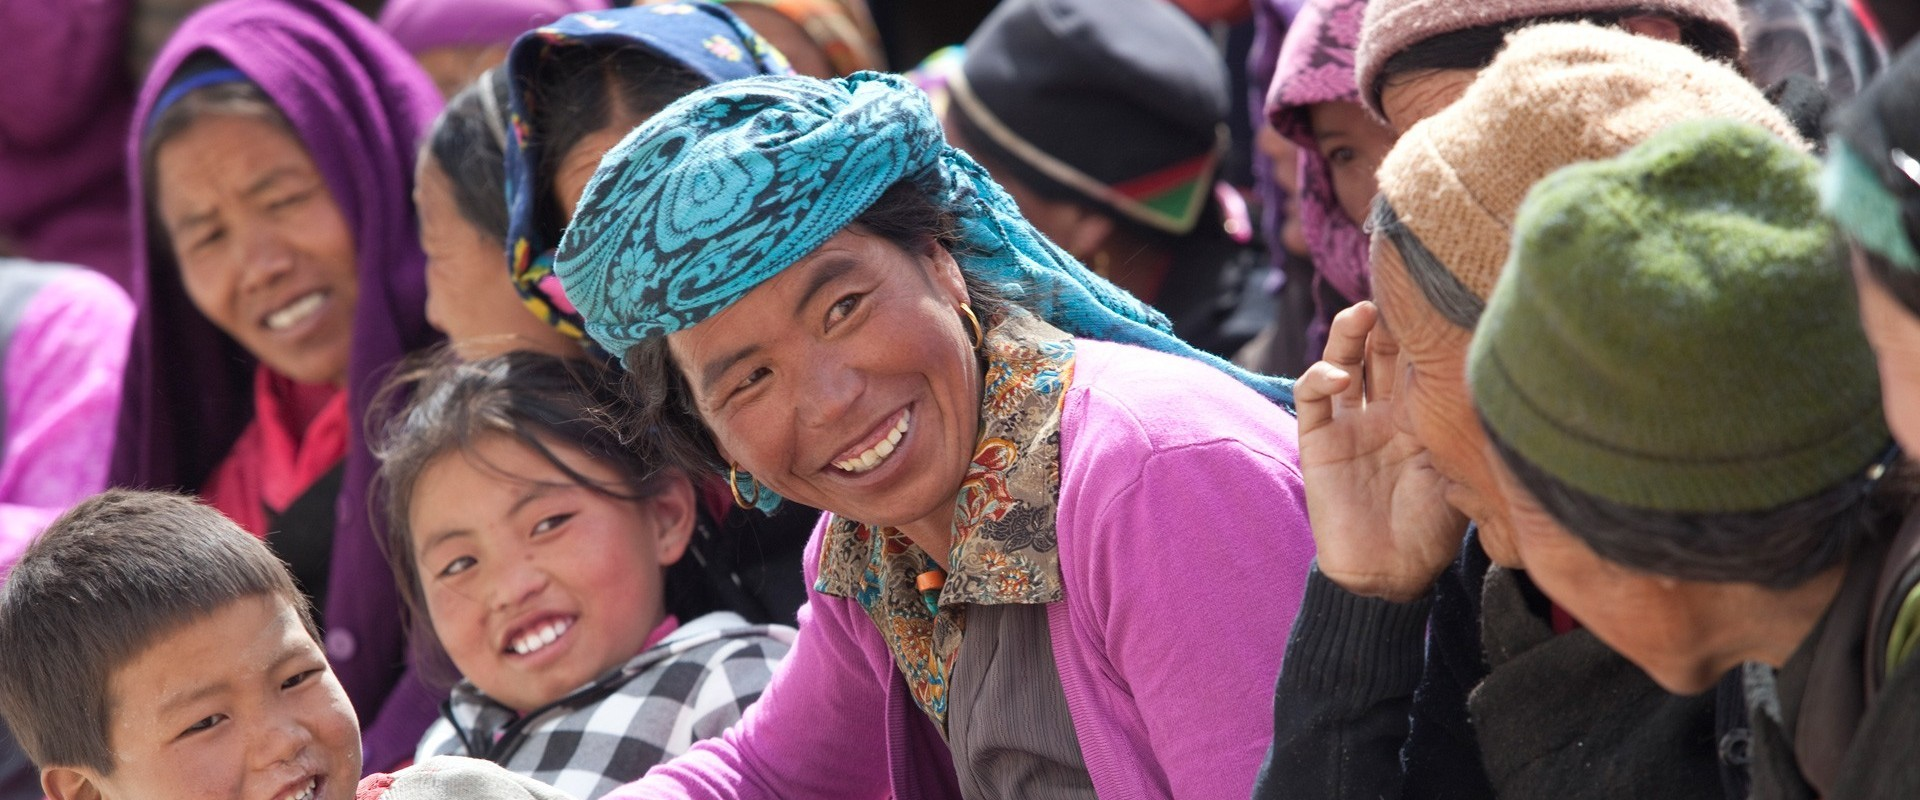 Nepal is best Destination for CAS activities because of friendly people of Nepal